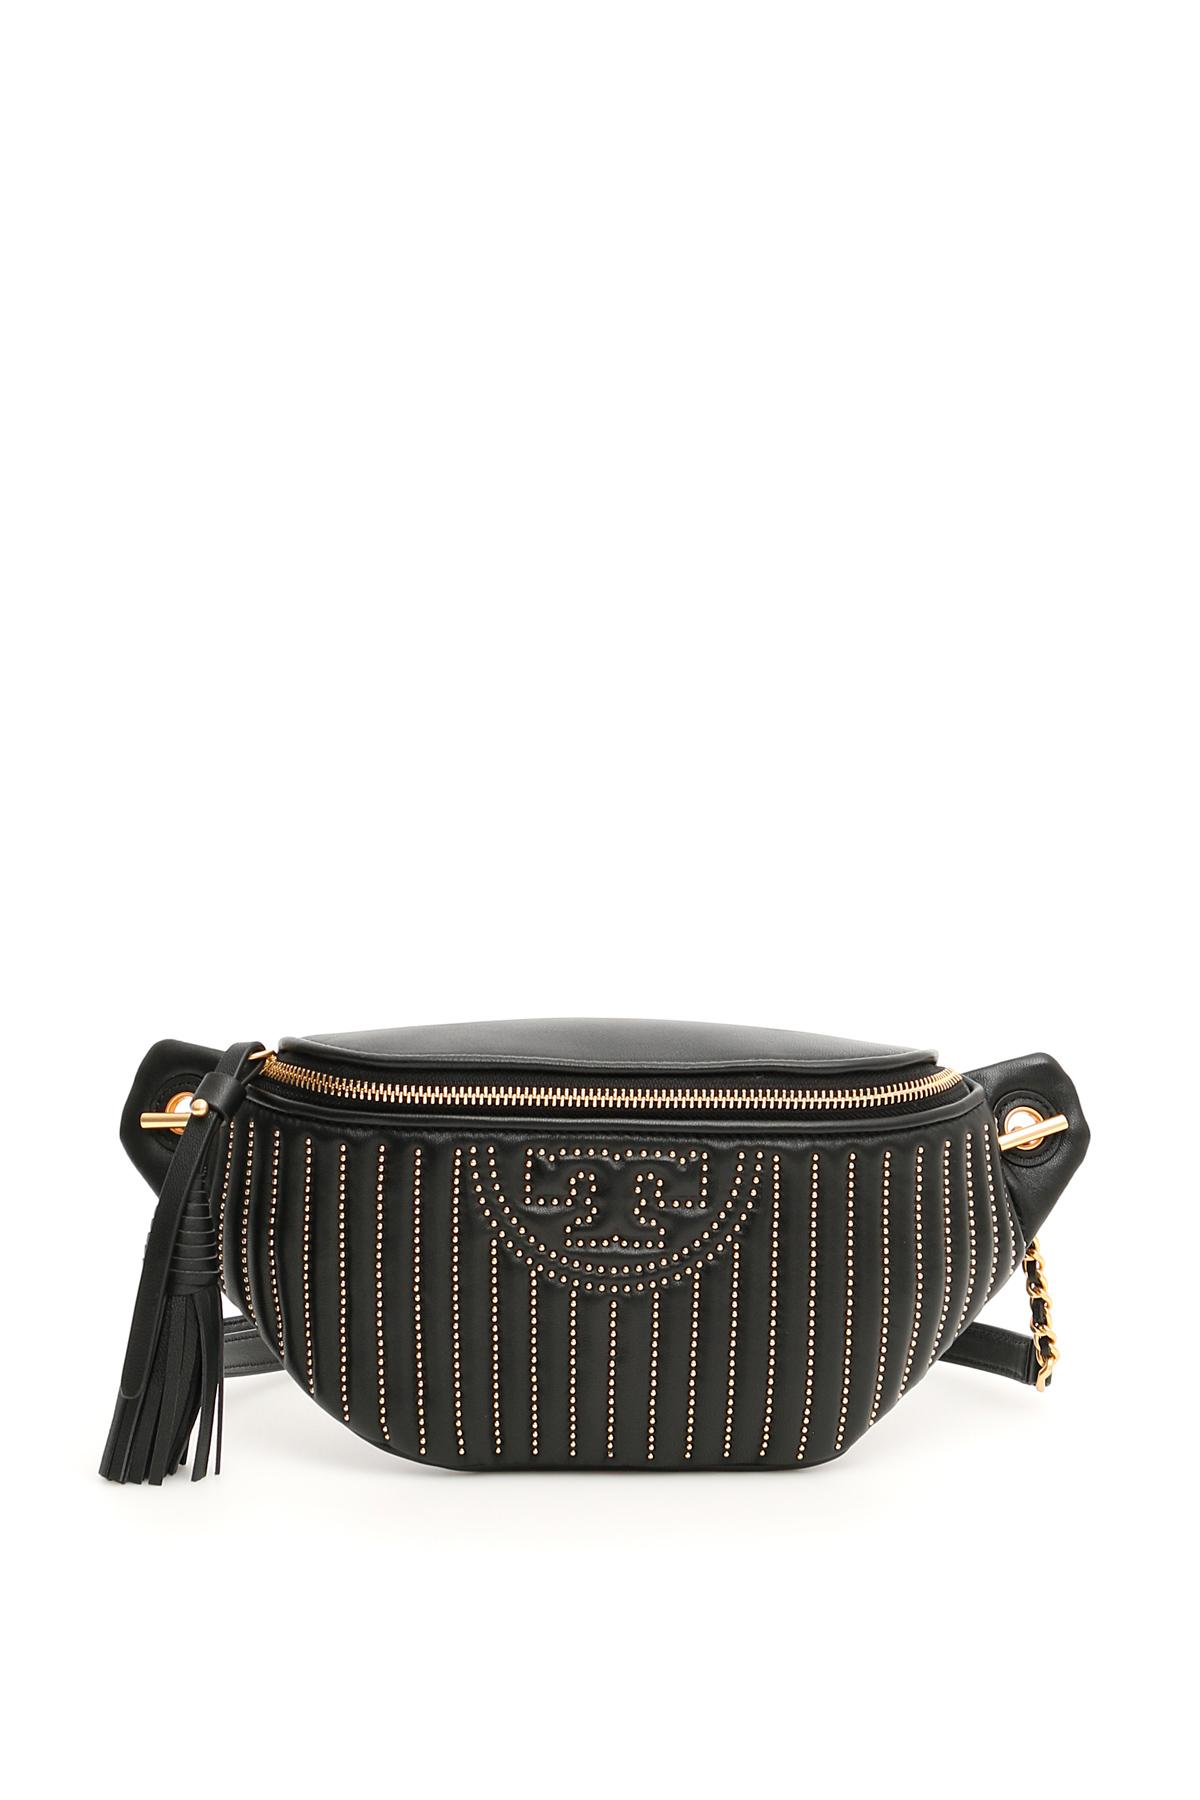 749b7382e58 Lyst - Tory Burch Fleming Quilted Beltbag in Black